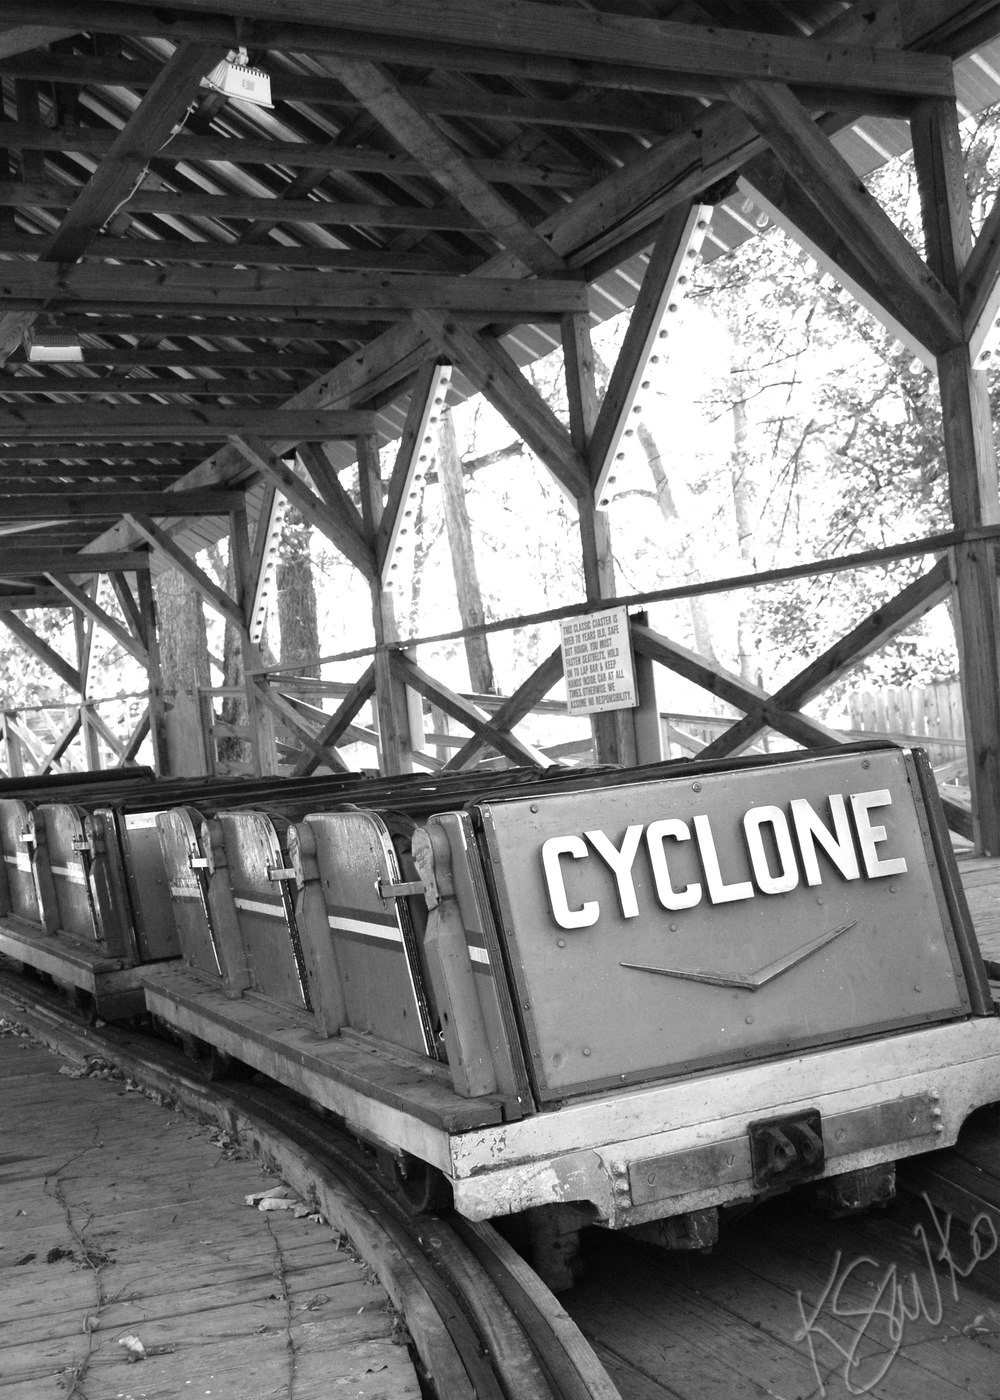 Cyclone at Williams Grove